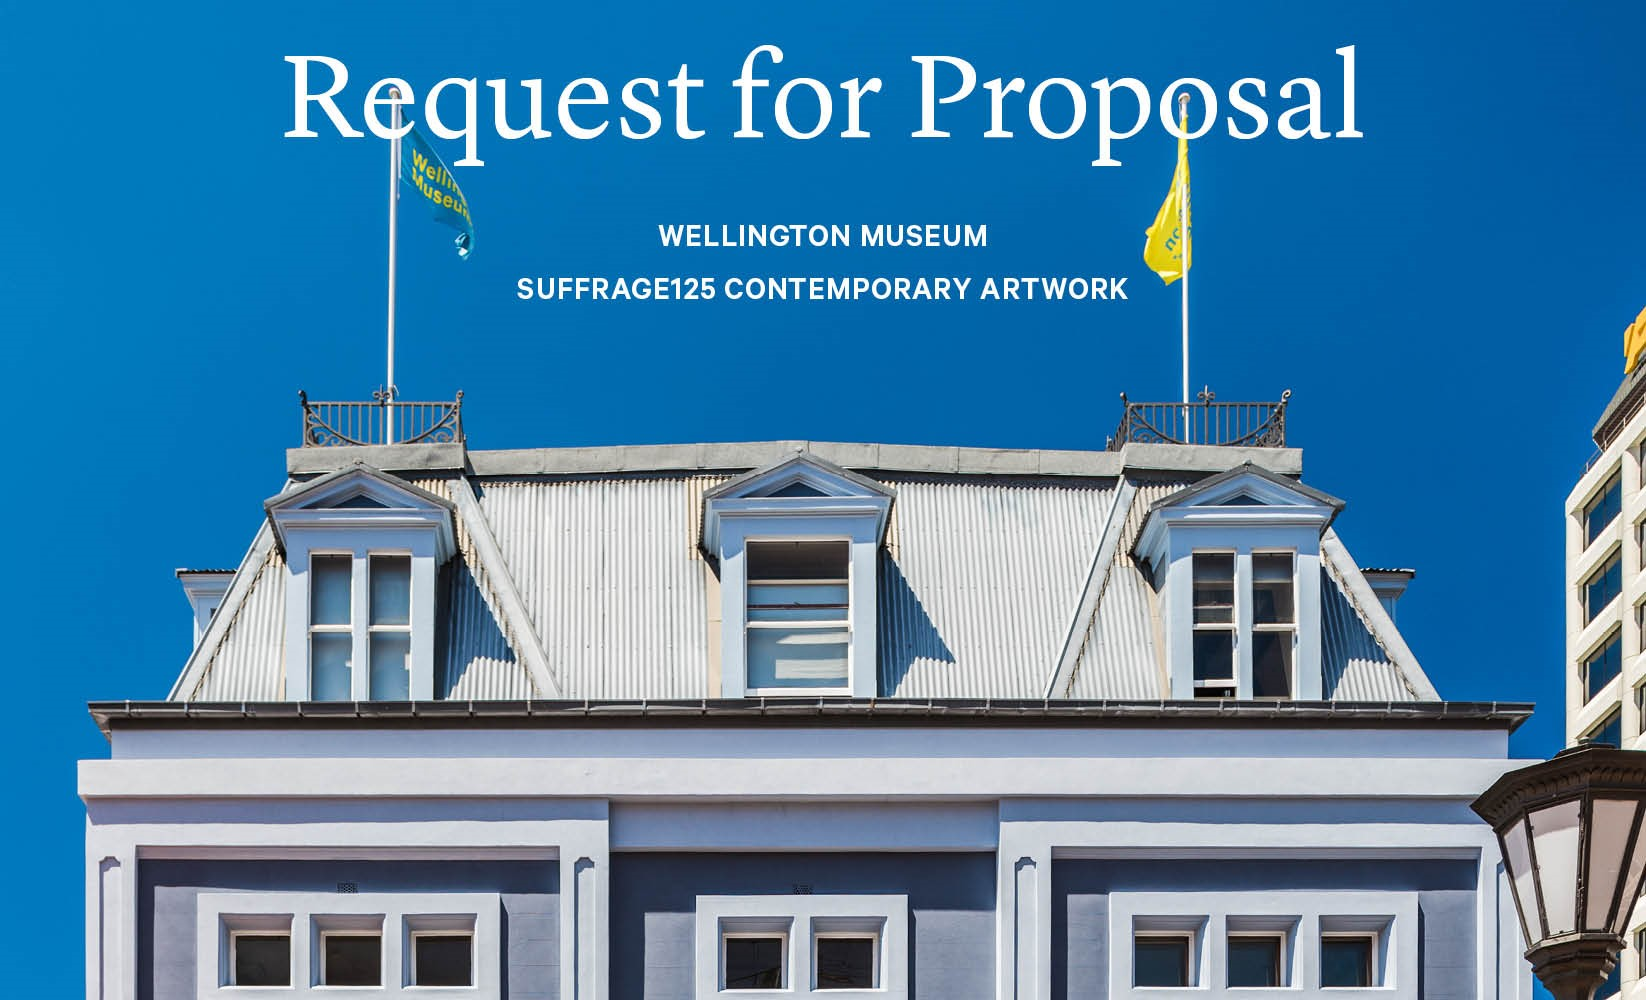 Suffrage 125 contemporary artwork: Request for Proposal